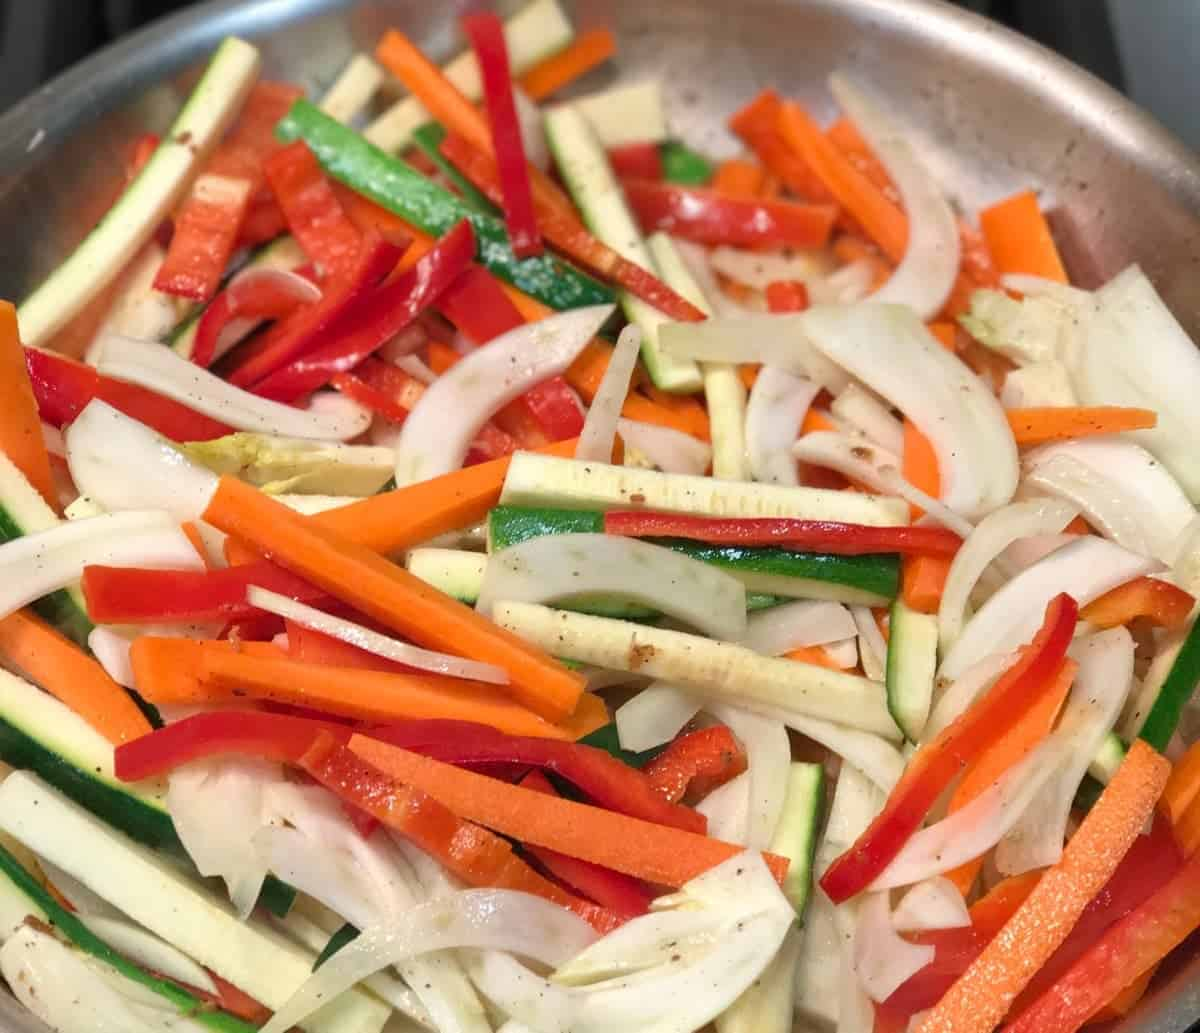 Julienned vegetables: carrots, fennel, and red pepper to serve with pan-seared halibut. recipe by foodology geek.